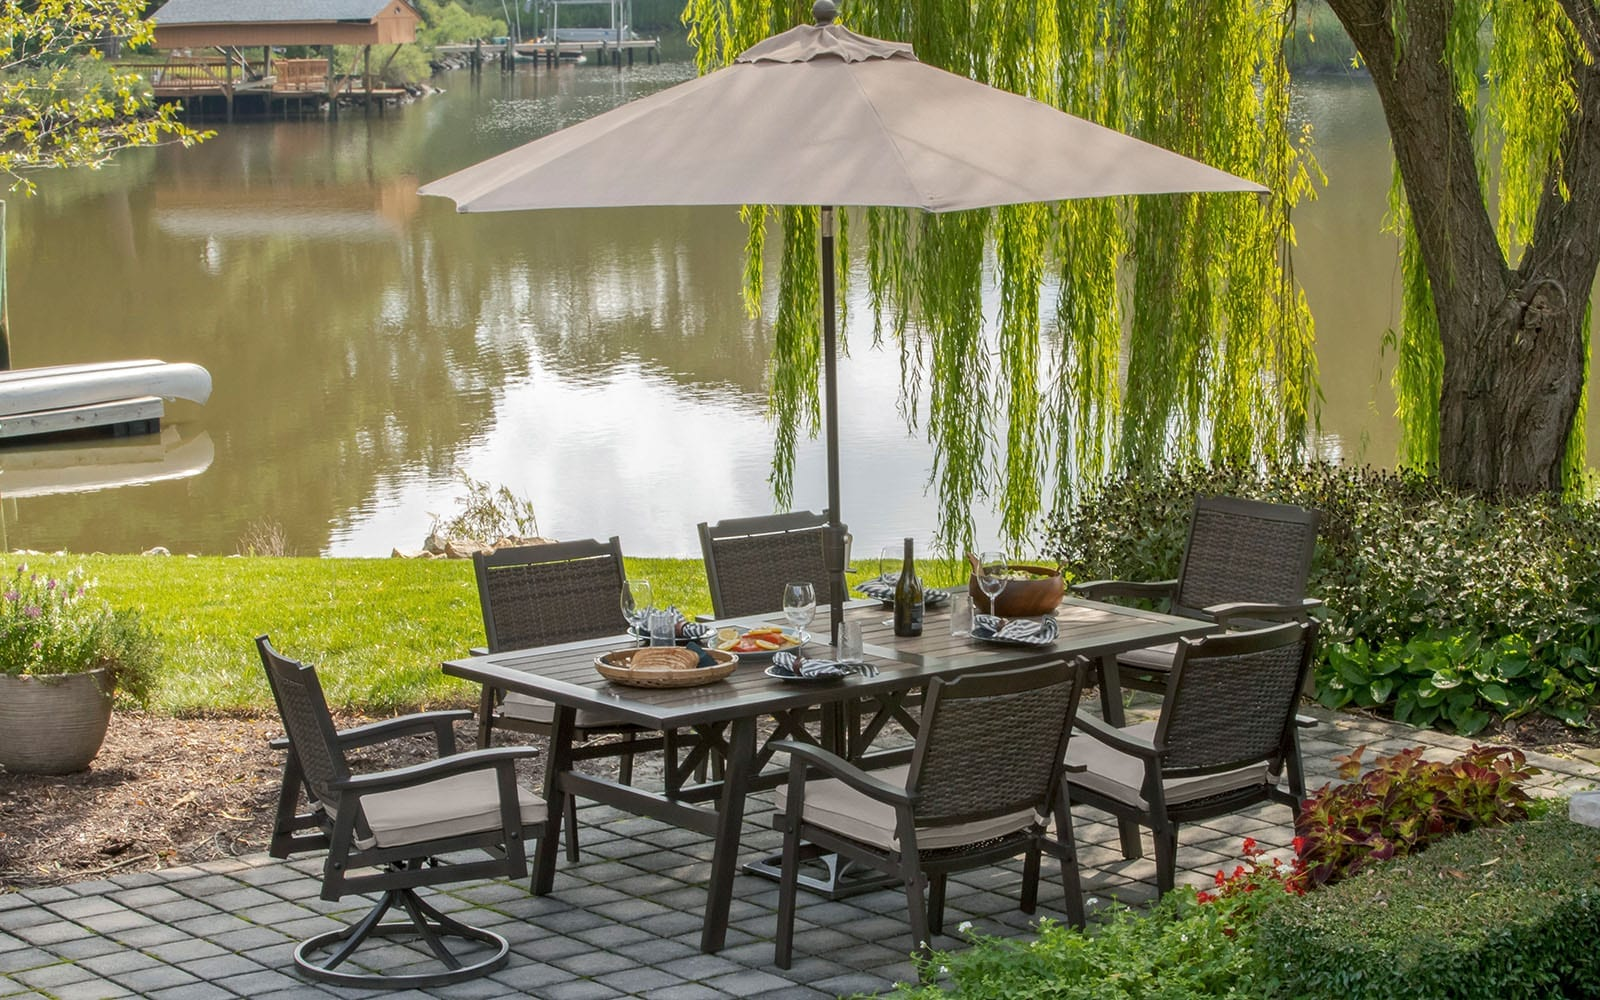 Outdoor Furniture For Sale Best Patio Furniture On Long Island - Outdoor Furniture Clearance Sales